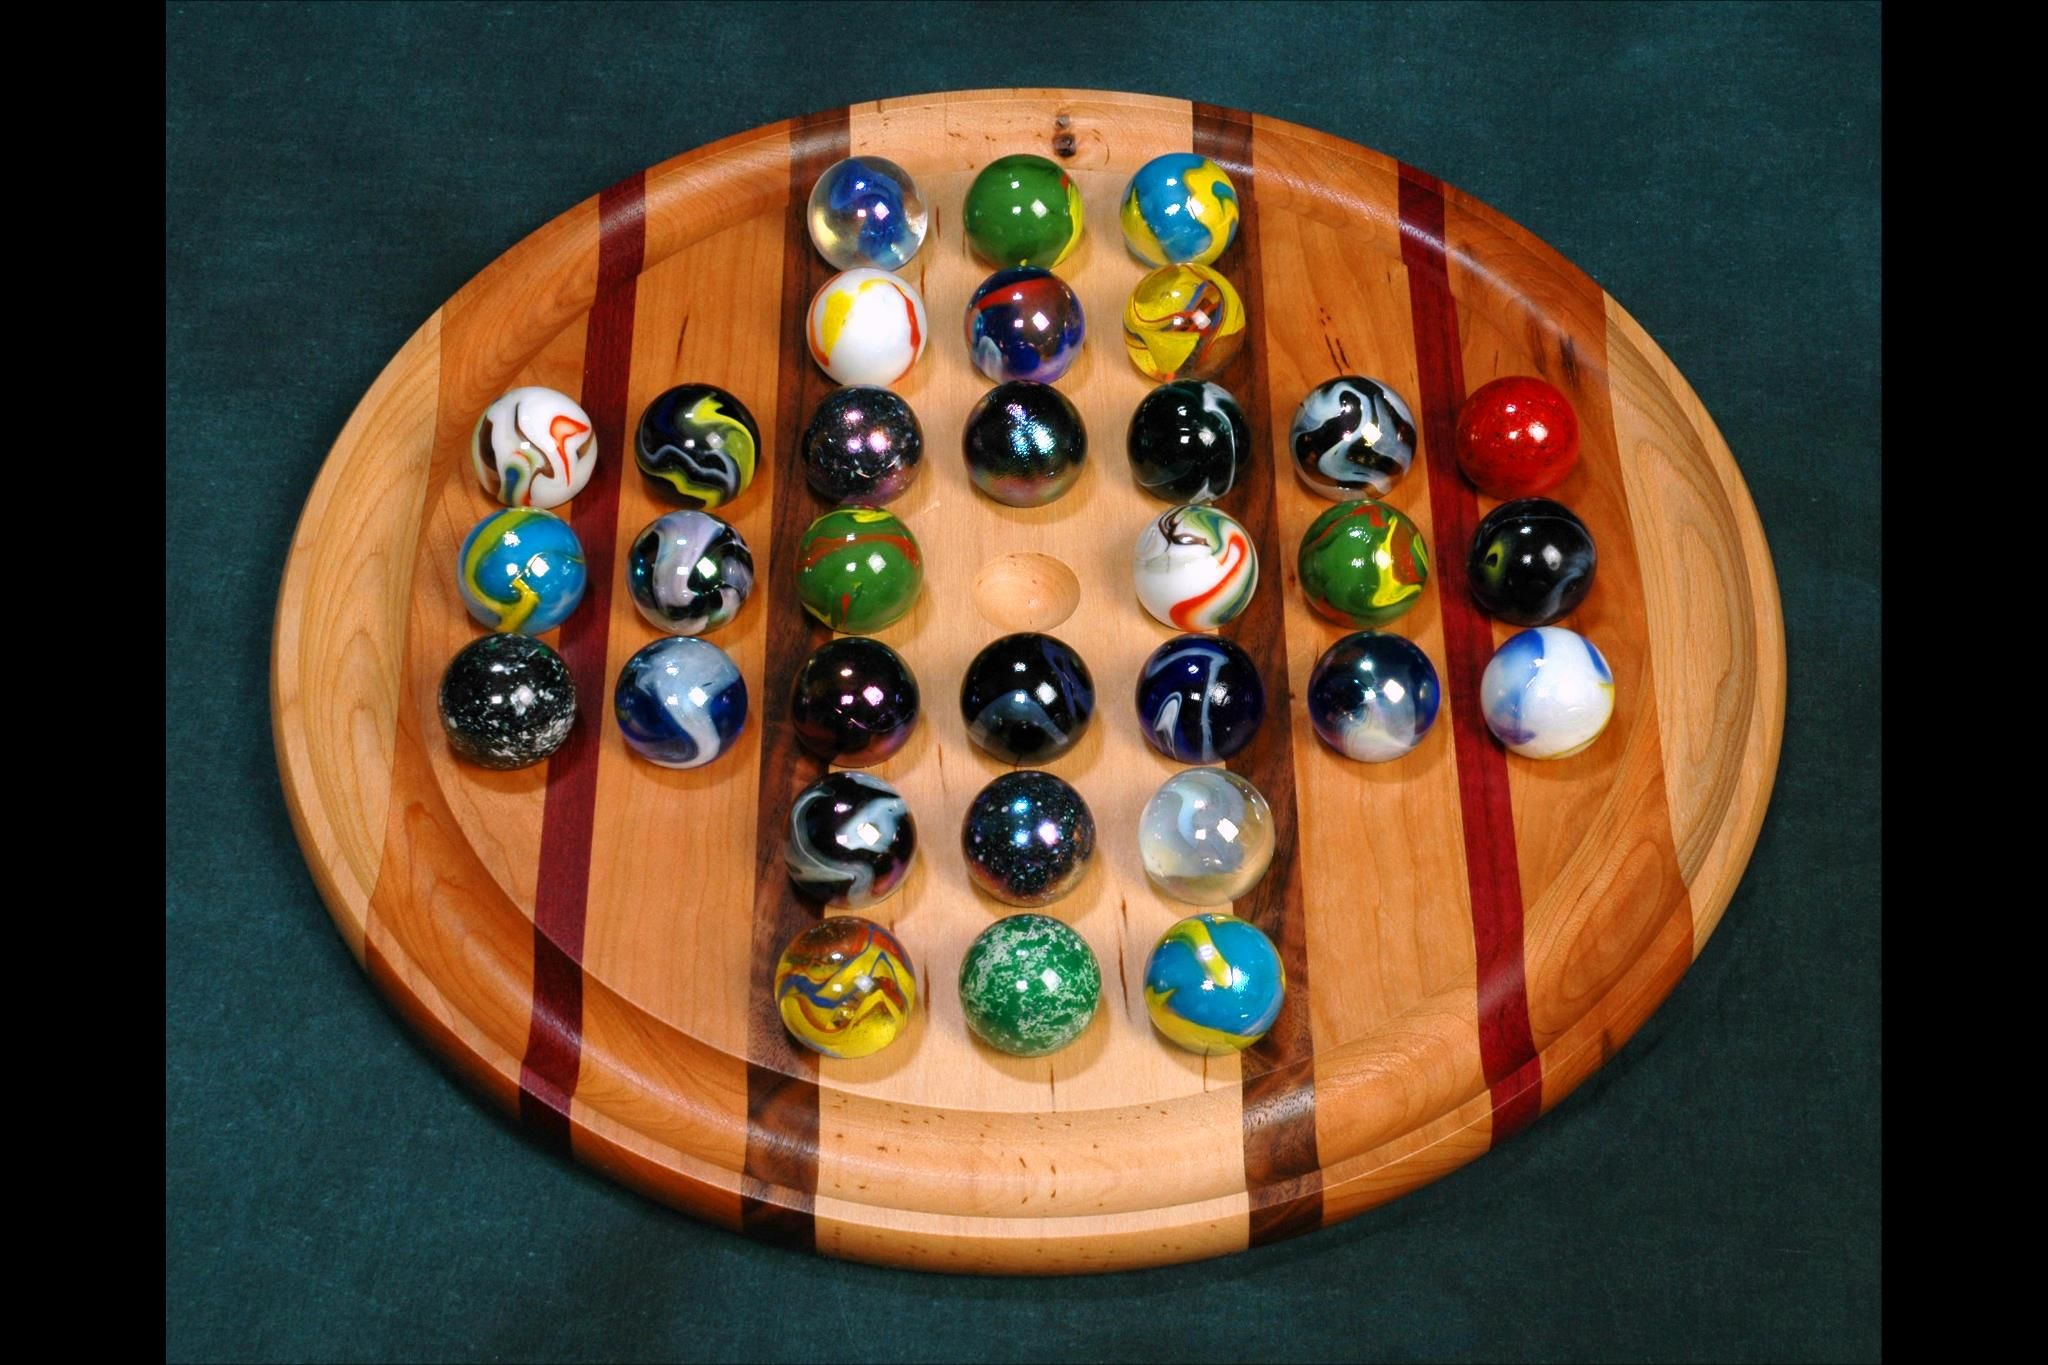 Colossal marble solitaire wooden game board16 marble